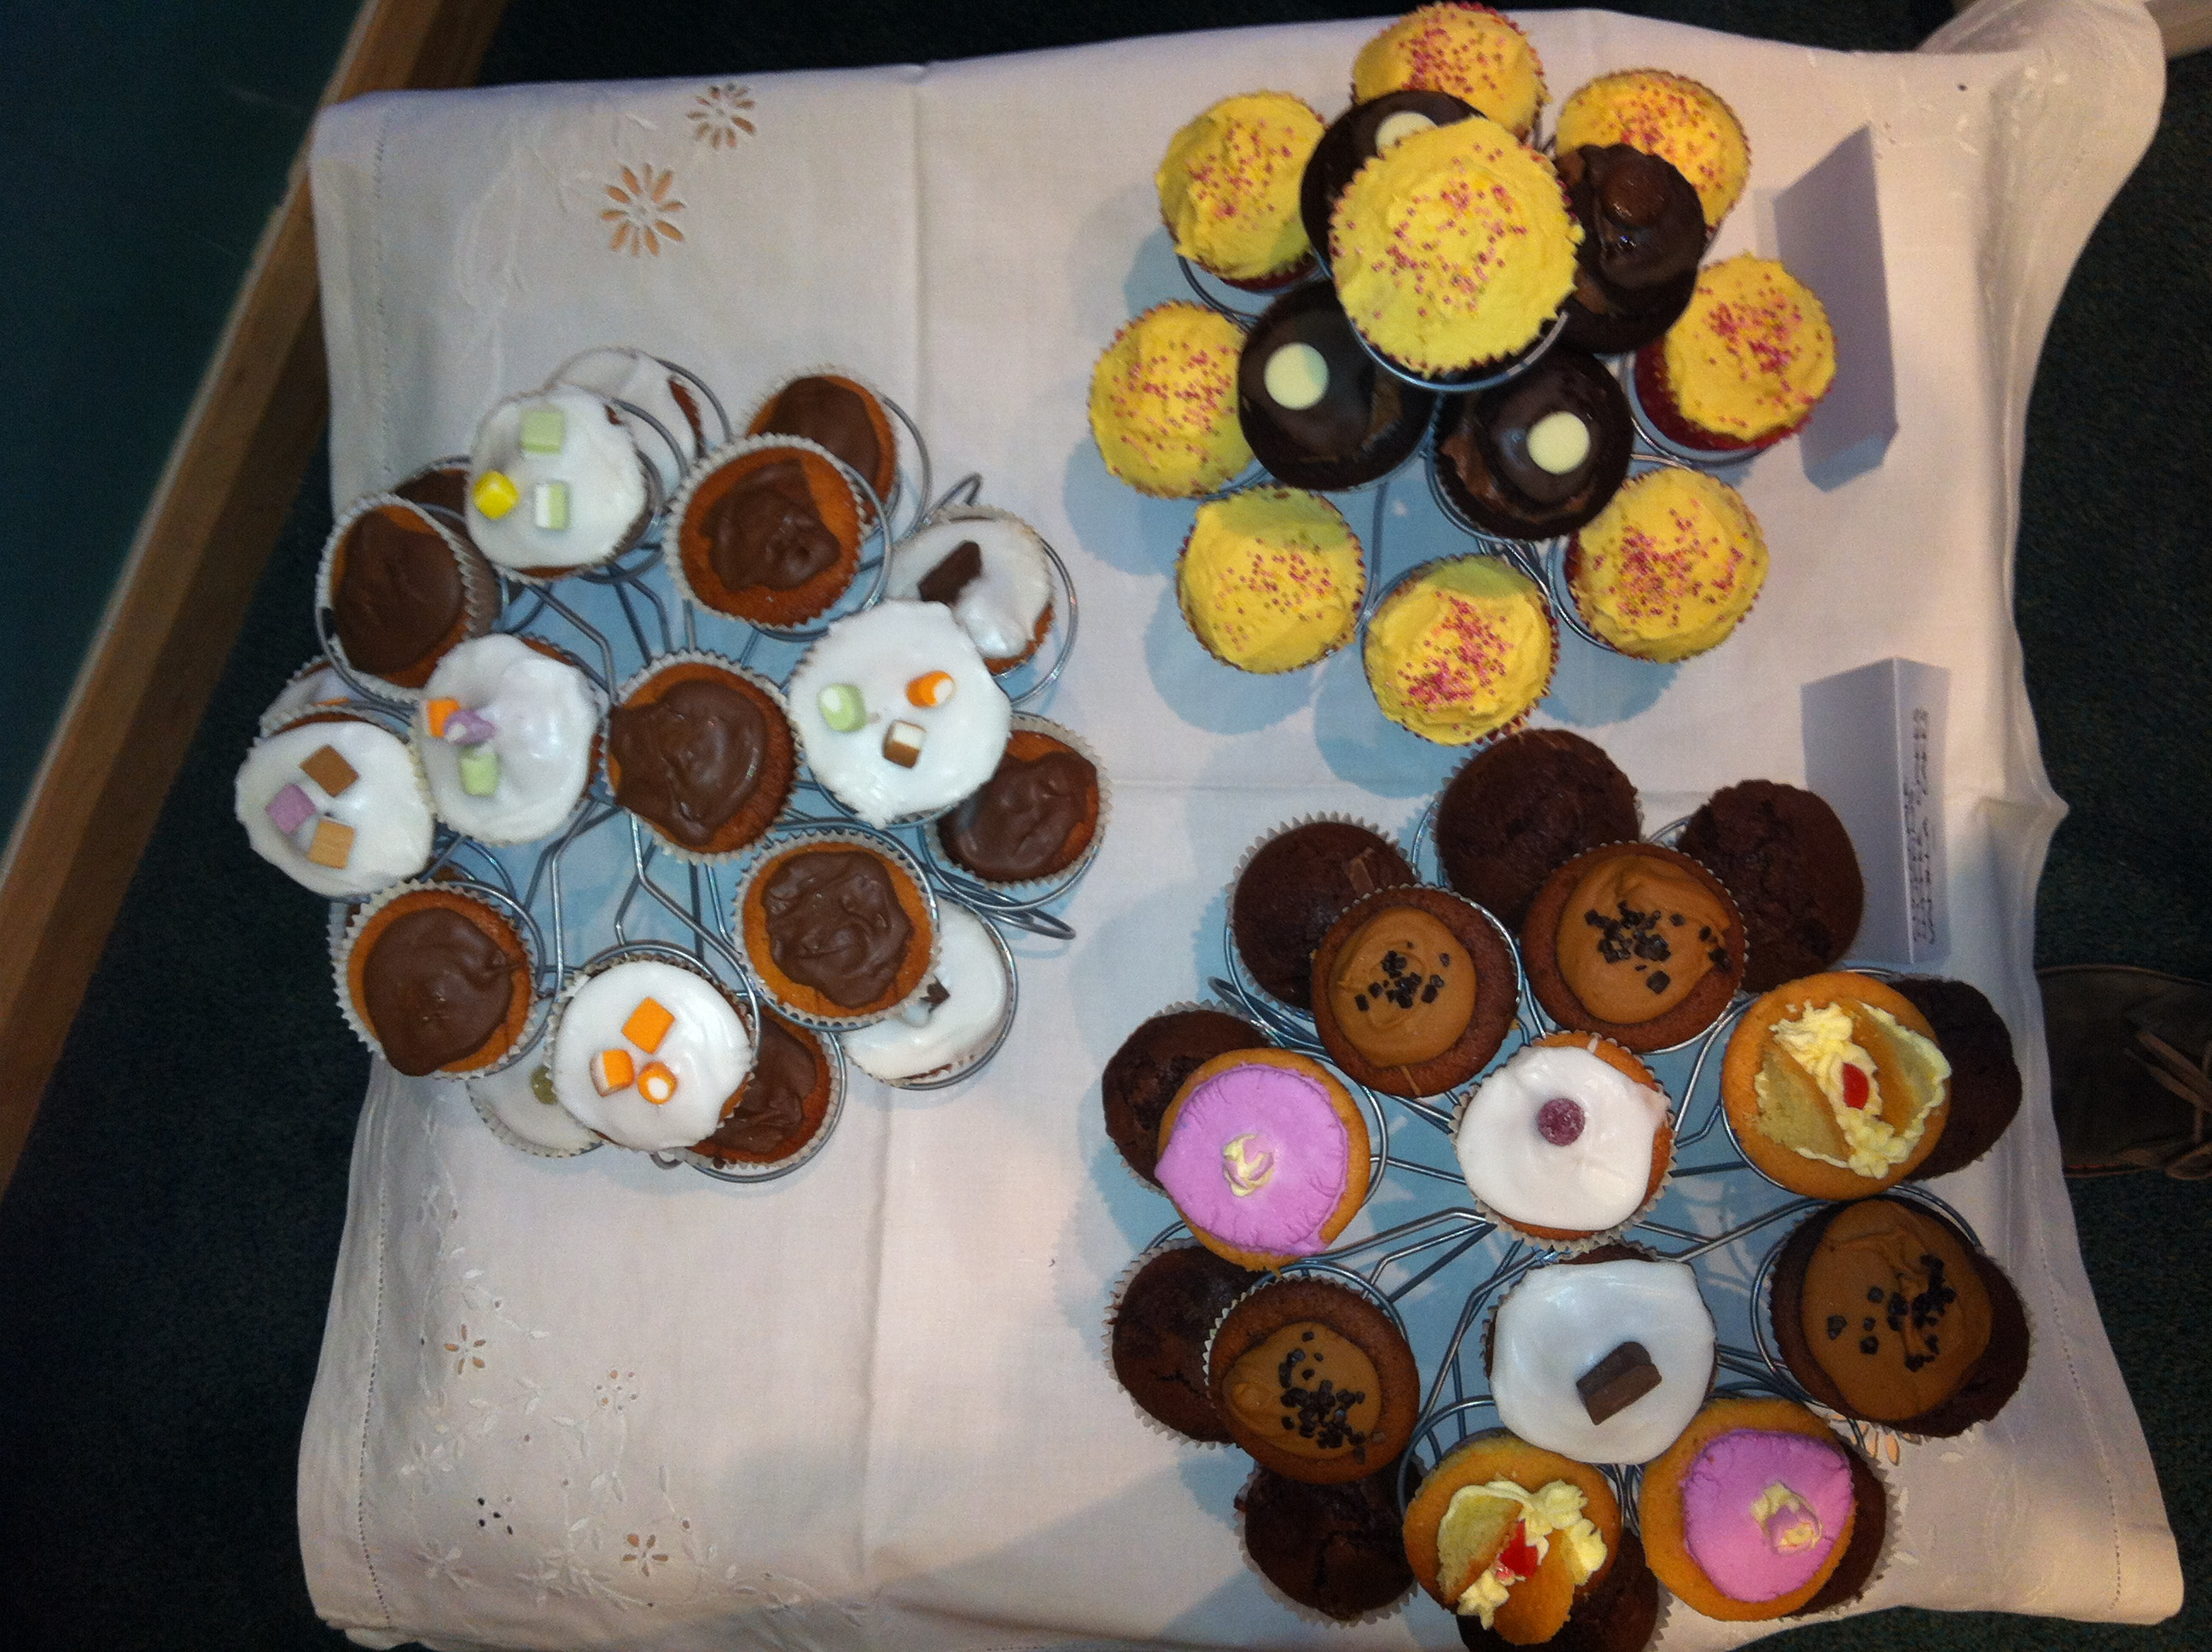 The World First Children In Need cake sale!